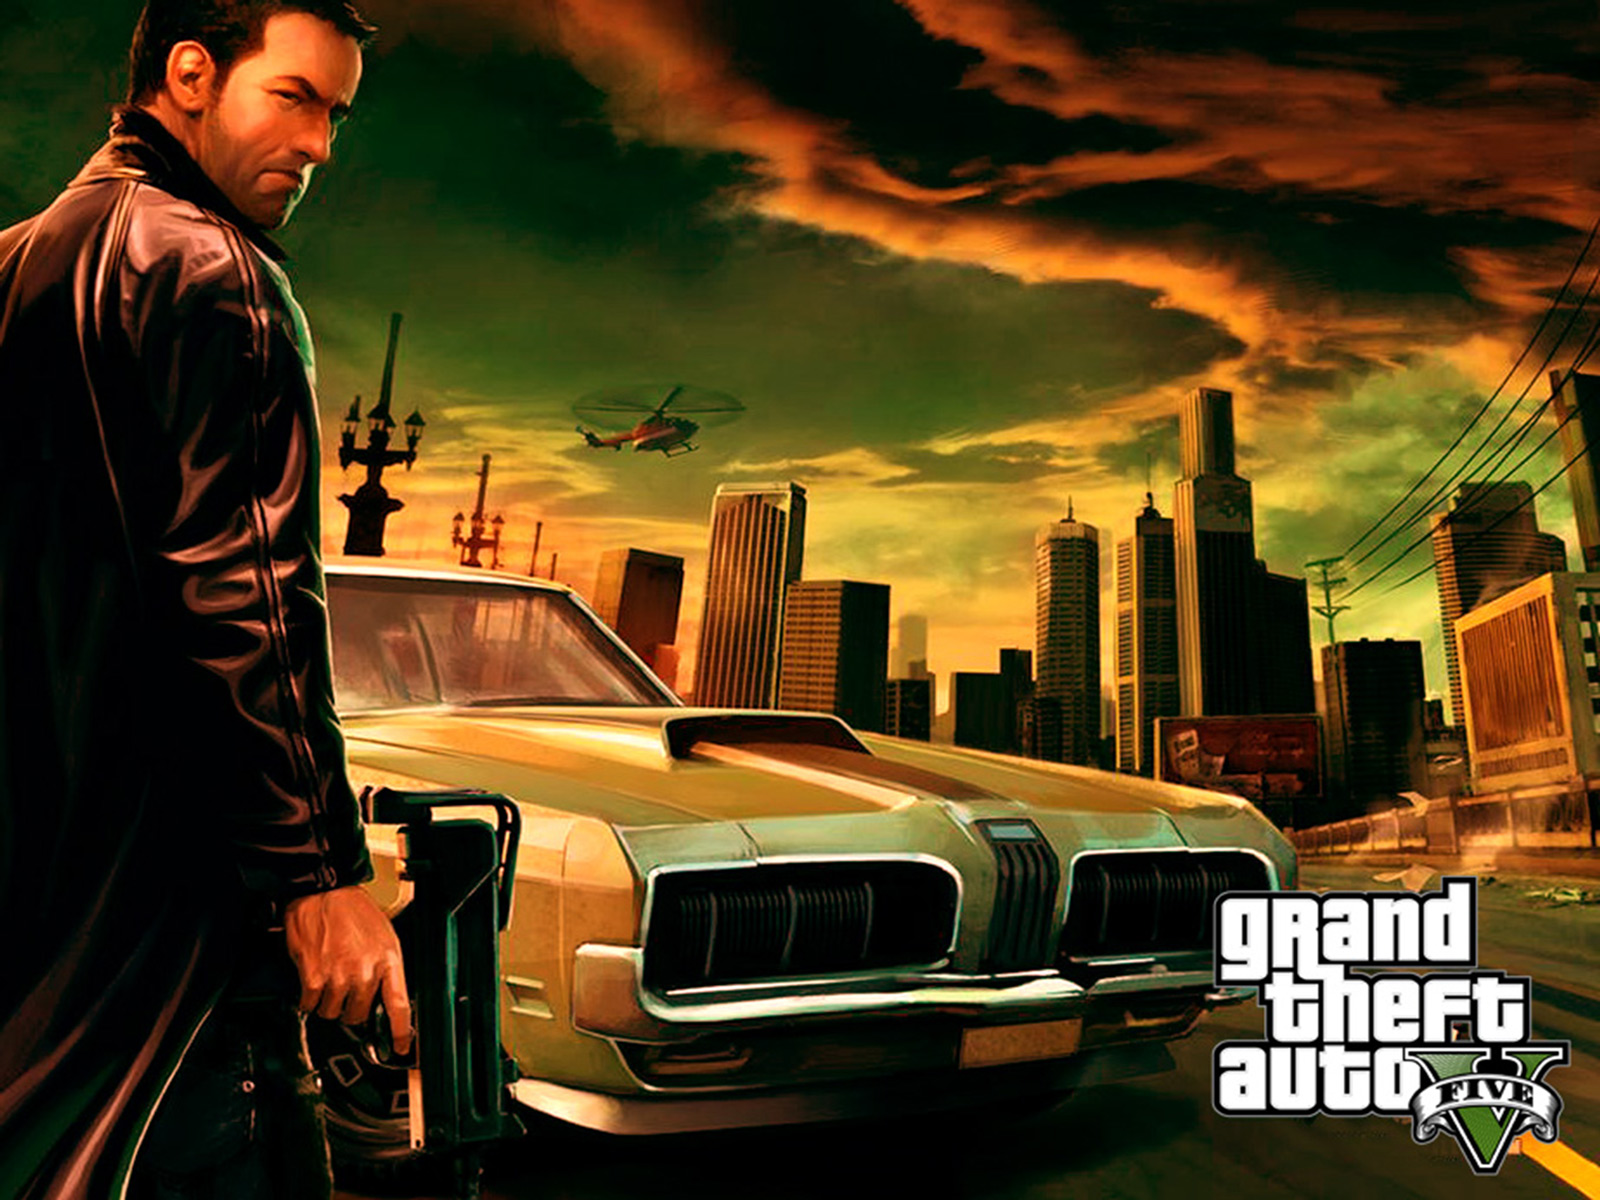 gta 5 wallpaper hd 1080p 1024x768new gta 5 wallpaper hd 1080p 1024x768 1600x1200